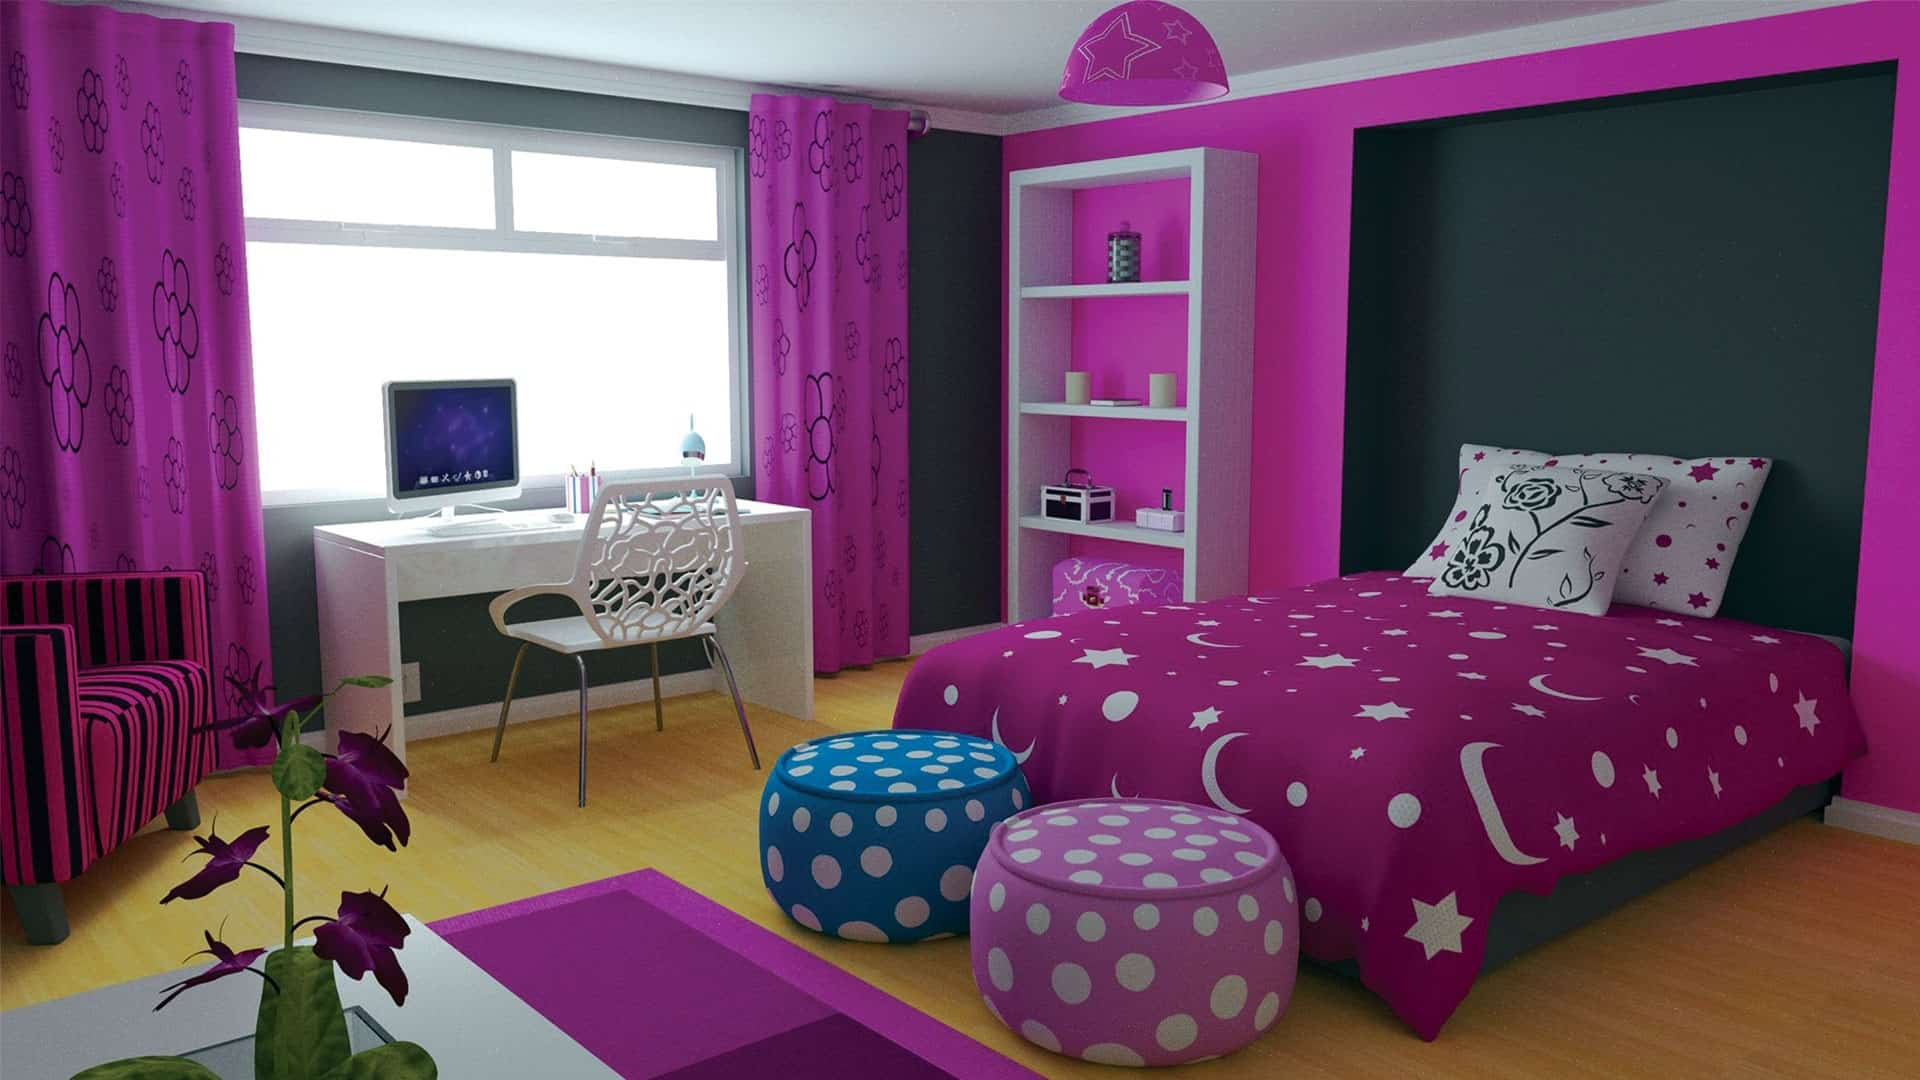 Room Decor Ideas For Teens girl room decor on pinterest teen girl rooms girl rooms and